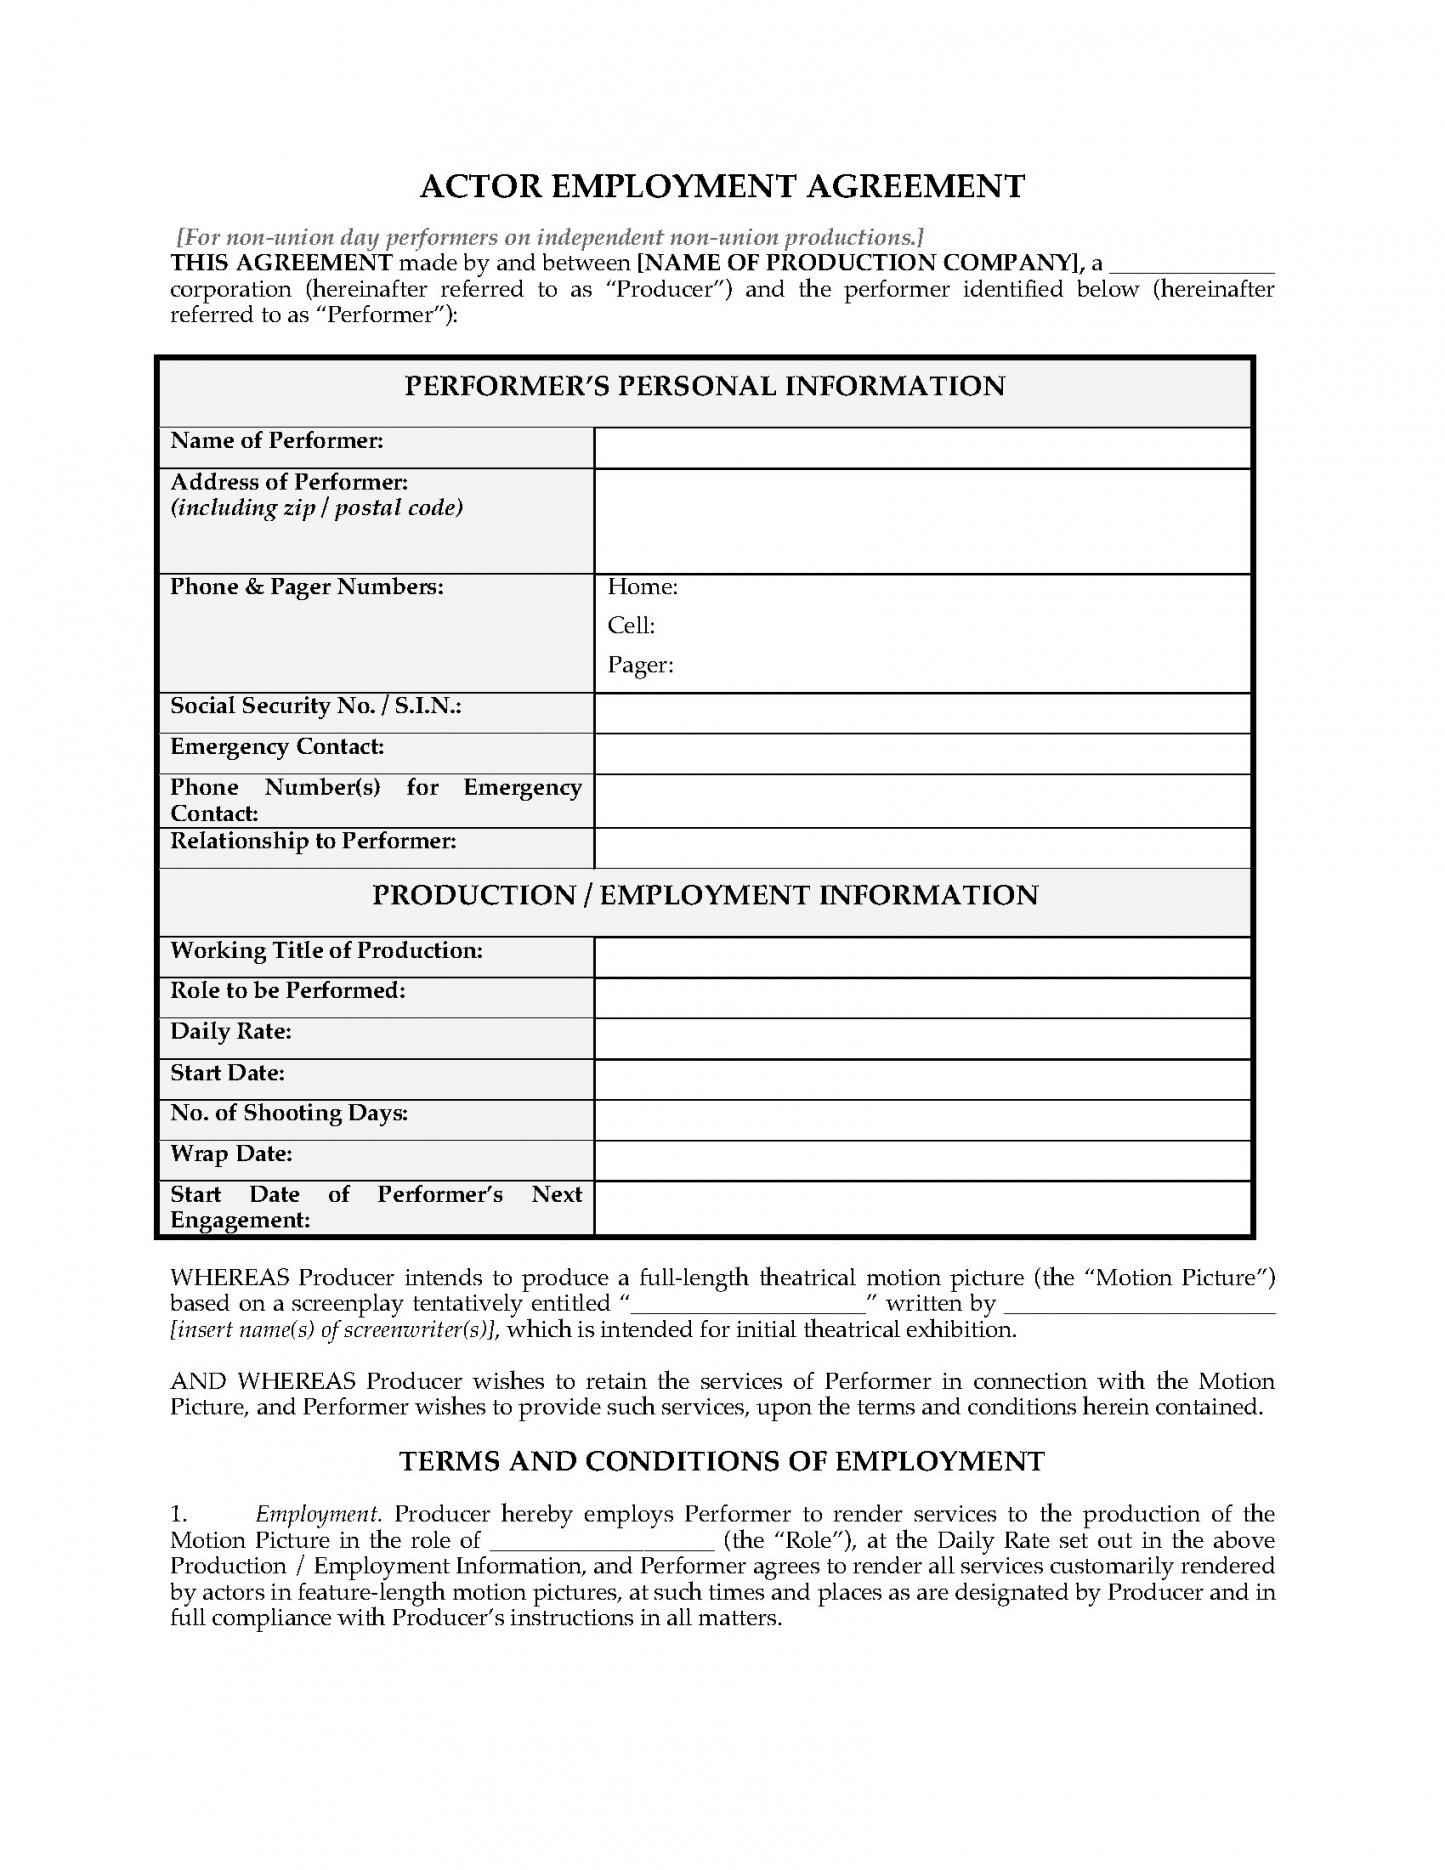 here the actor employment agreement for nonunion day performers  legal film actor contract template